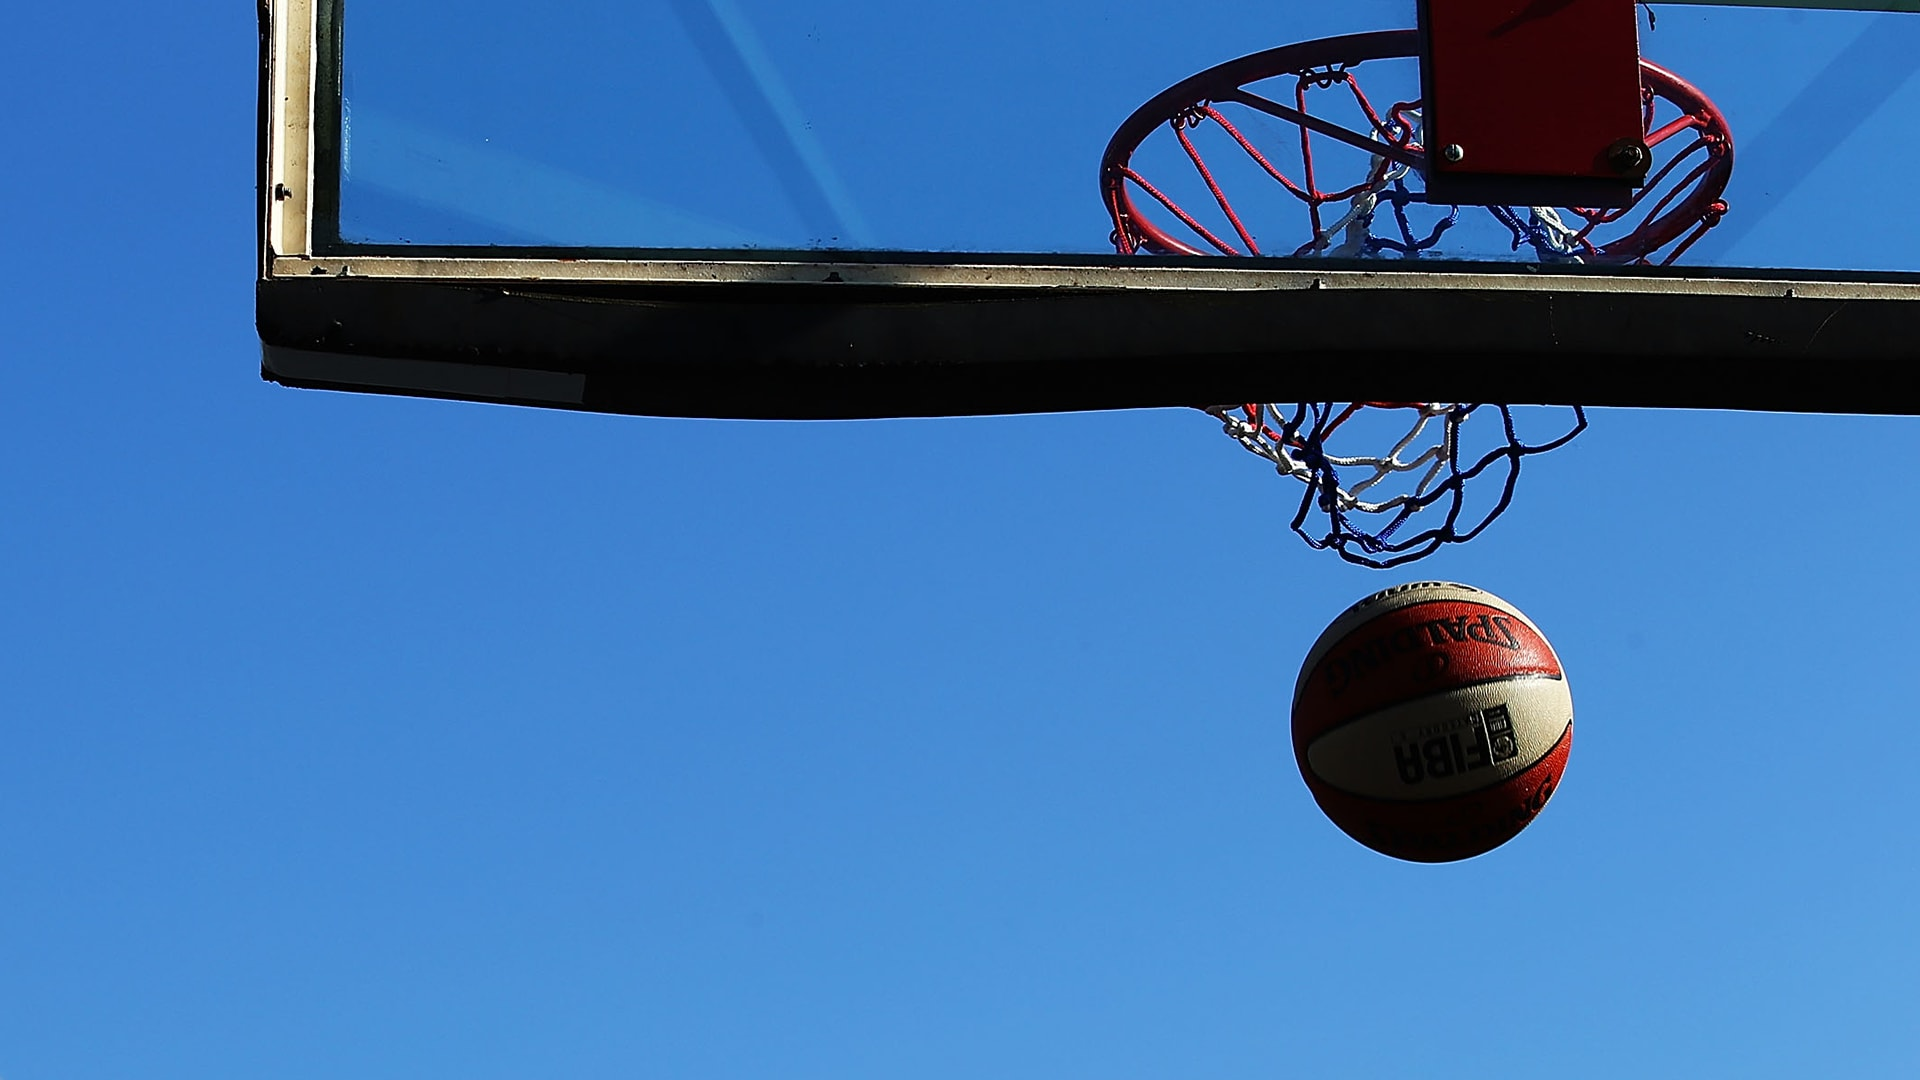 Australia vs usa women basketball game highlights 7 16 2021. Group A Women's Basketball 3x3 Olympic Results and Live ...